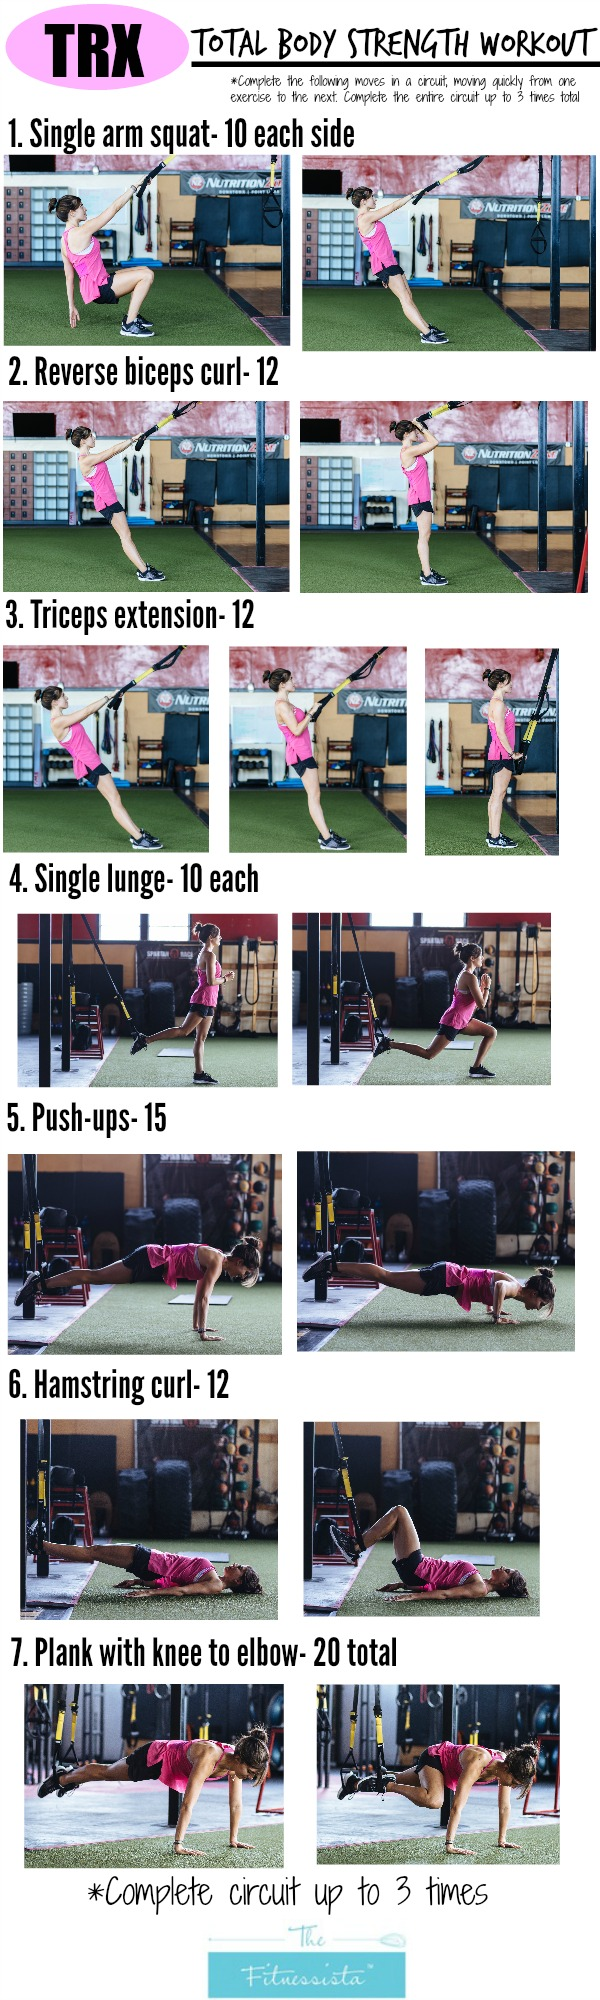 Snap Trx Full Body Workout Circuit Blog Dandk Photos On Pinterest With Weights Workouts